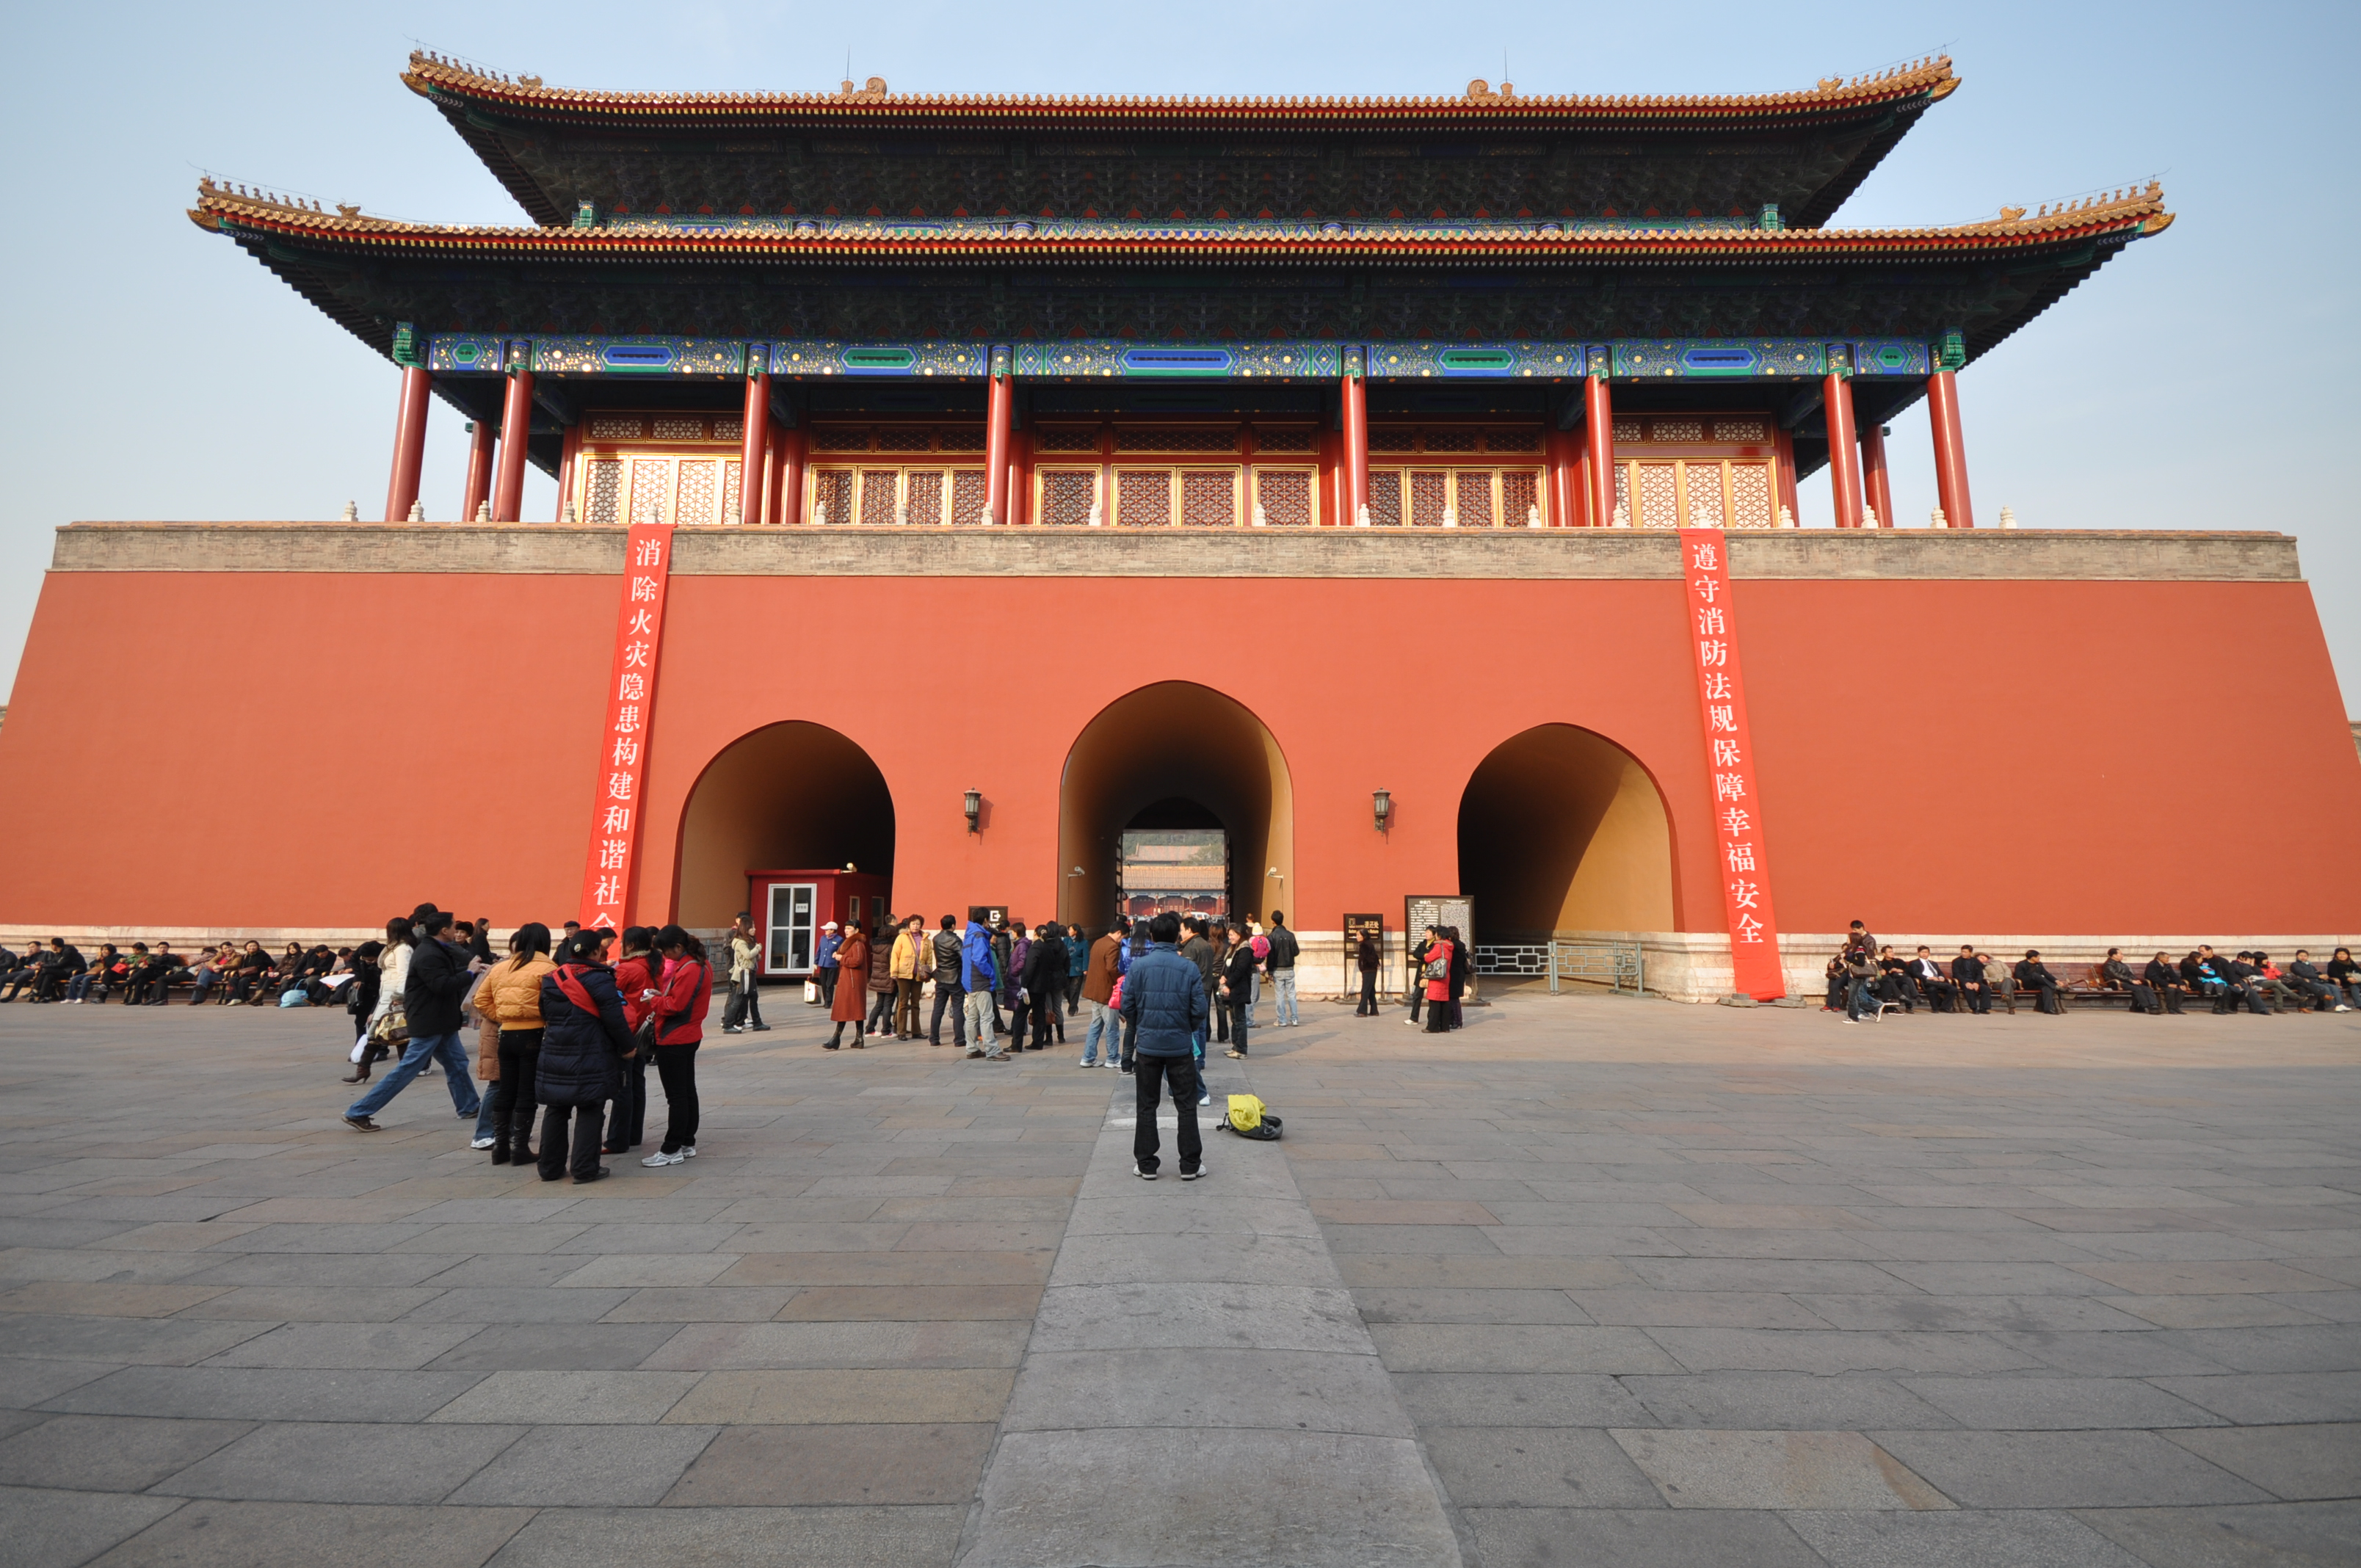 forbidden city william bell essay Alex jackson from forbidden city by william bell and winston smith from 1984 by george orwell illustrate how circumstances that change people irrevocably can influence the way people respond to situations alex appears to be a more honorable character than winston.